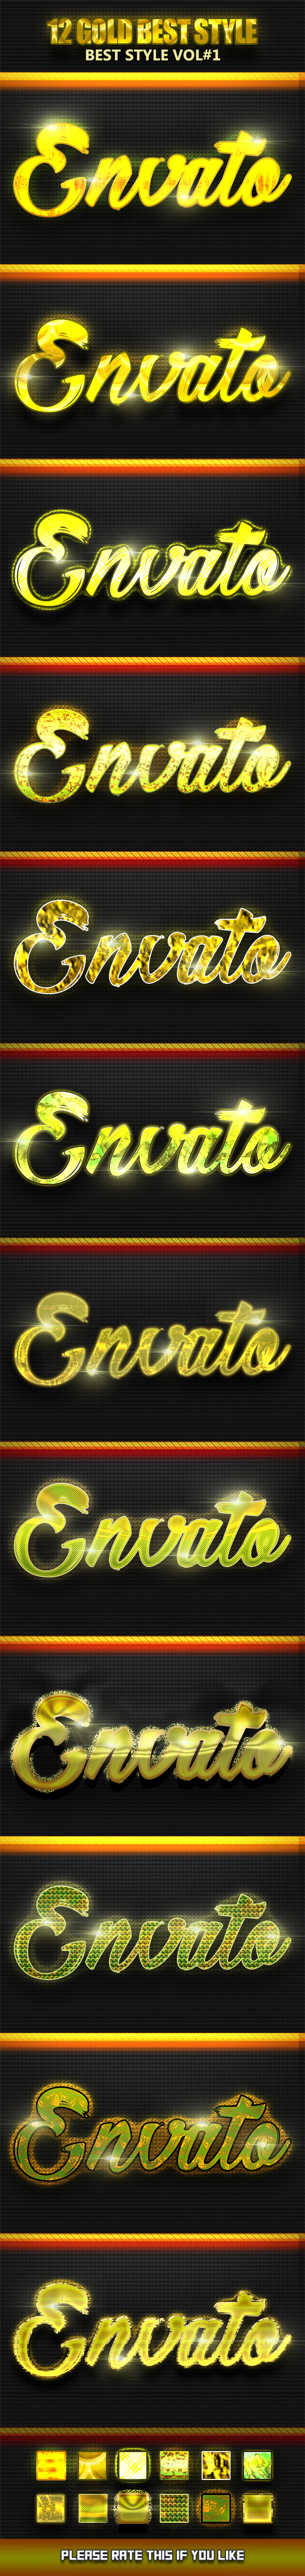 12 Gold Best Style Vol1 - Text Effects Actions